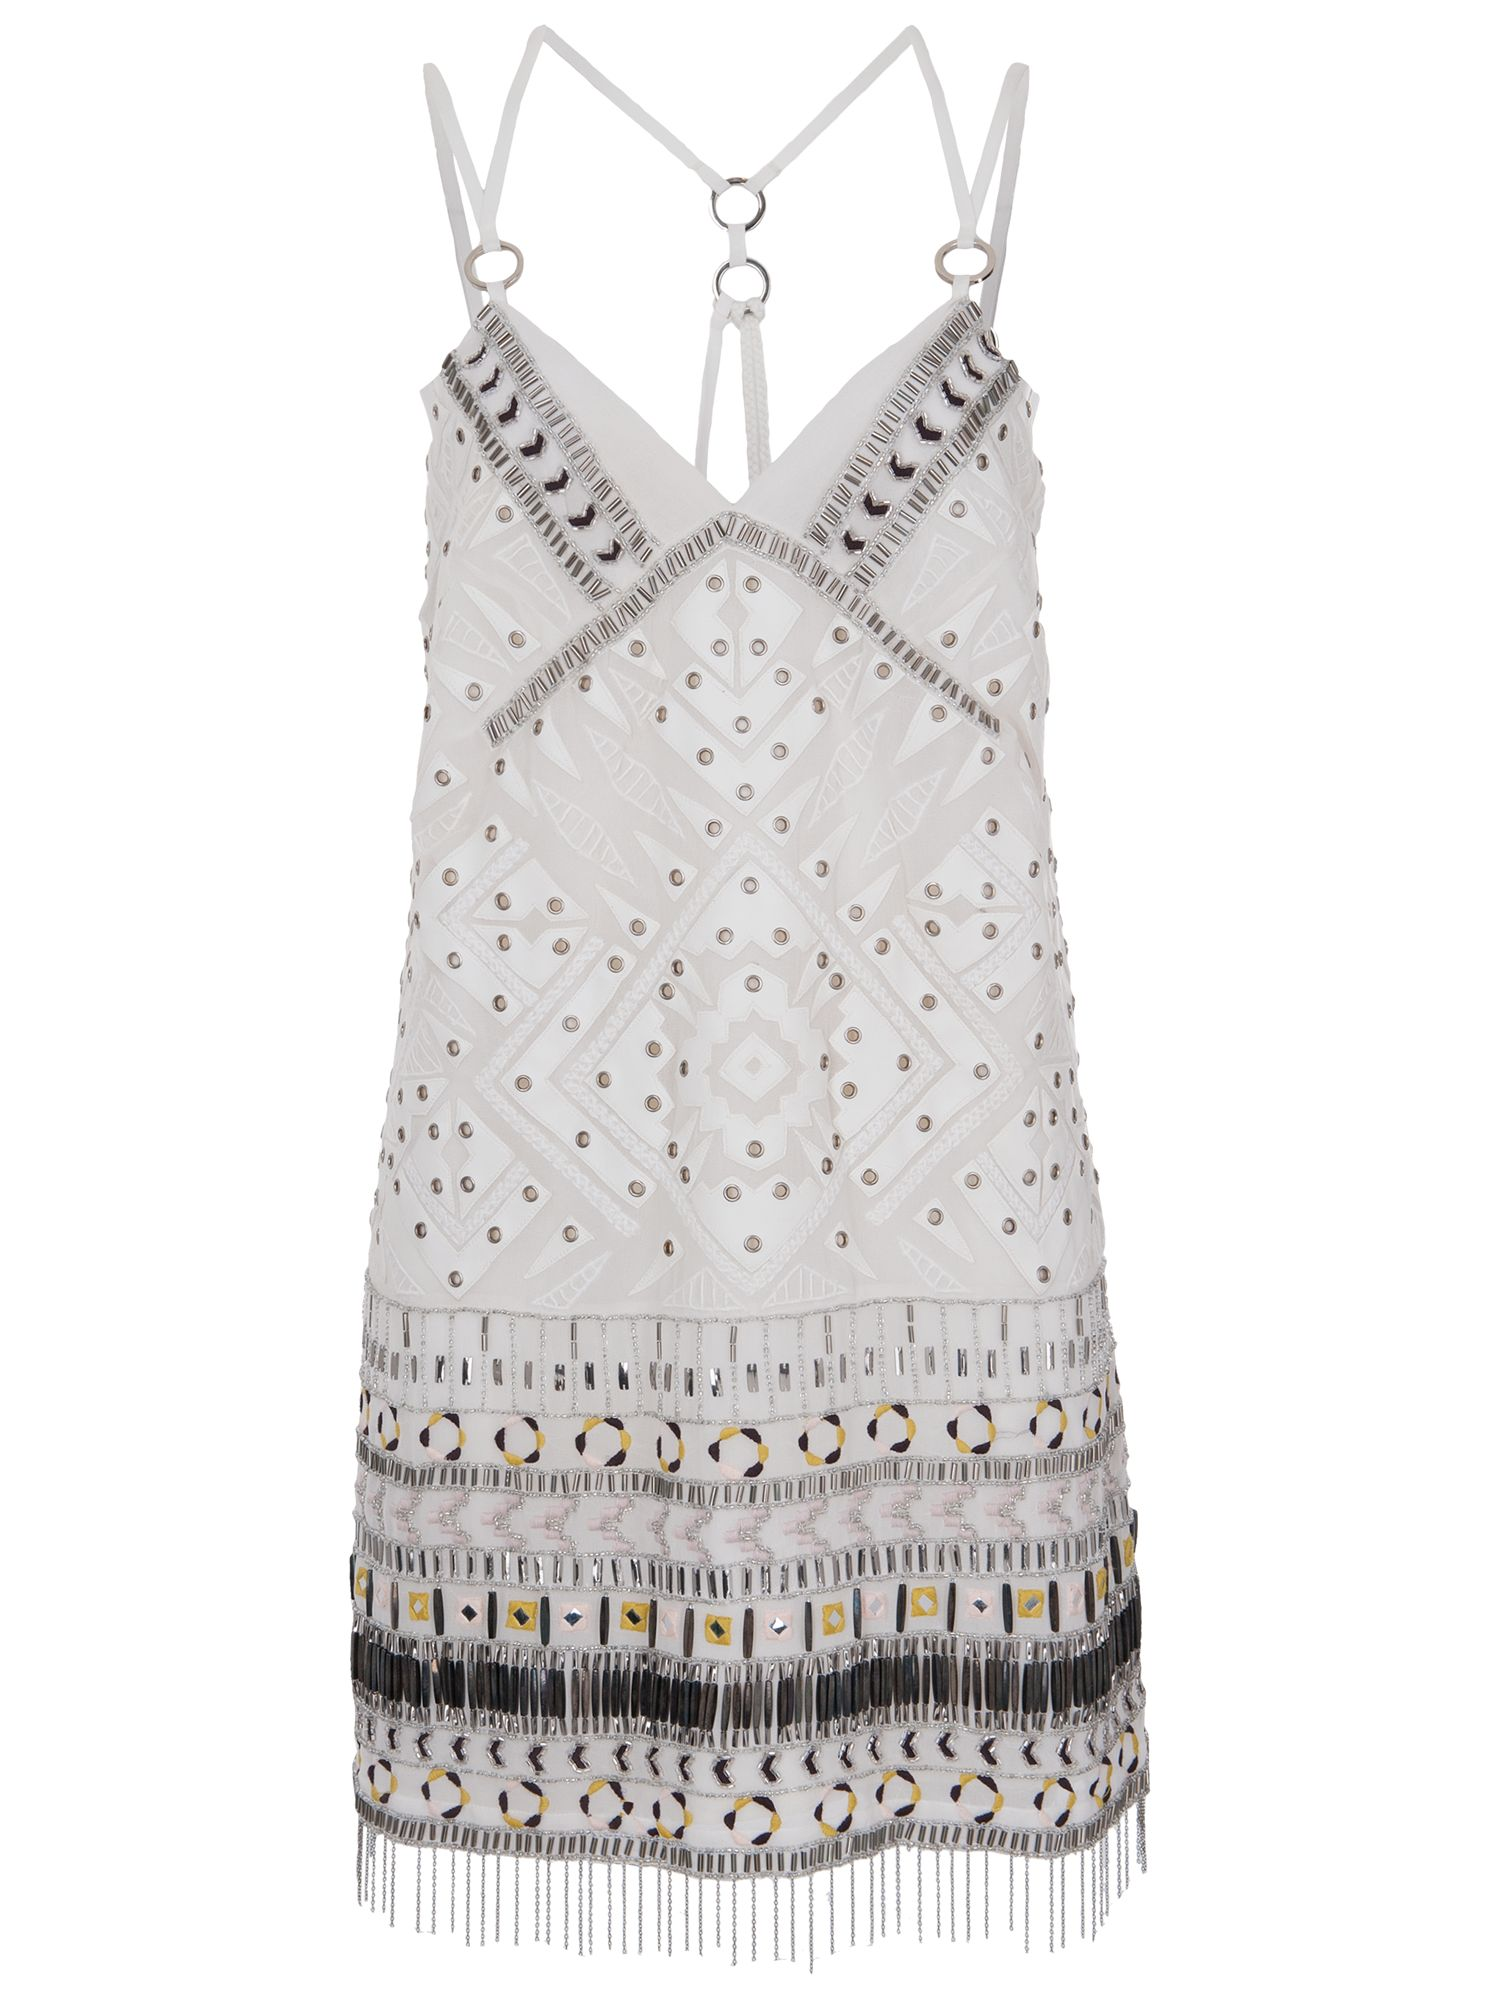 french connection cerro beaded dress porcelain, french, connection, cerro, beaded, dress, porcelain, french connection, 10|12|14|16|8|6, women, womens dresses, 1933192